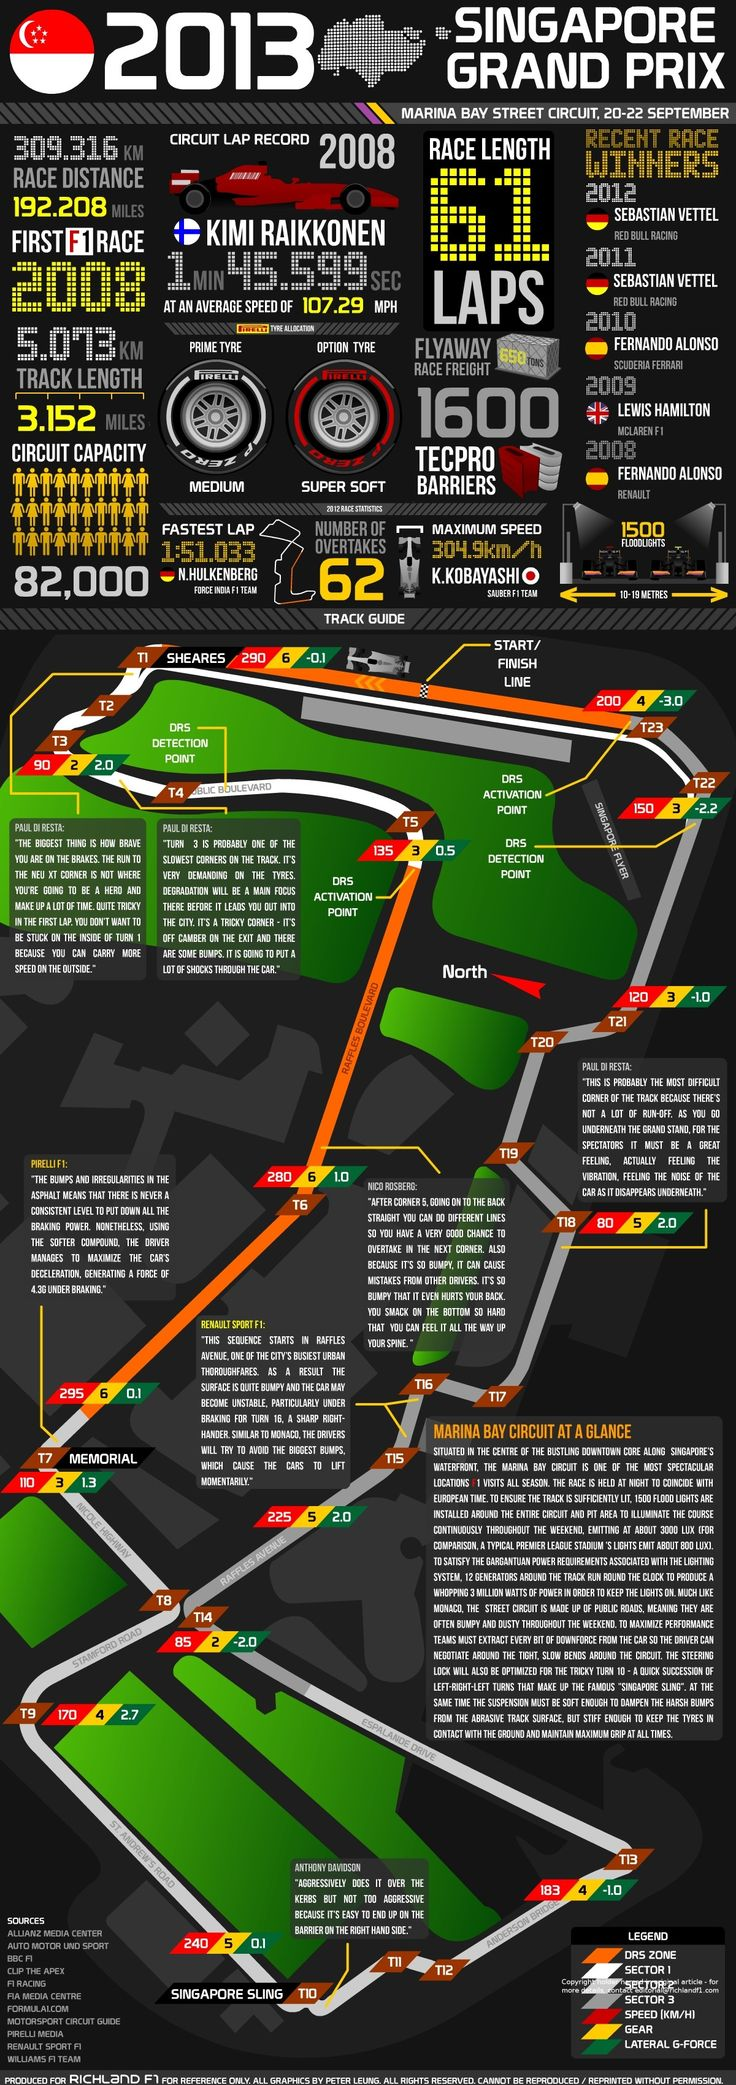 2013 Singapore Grand Prix - Facts and Figures #F1